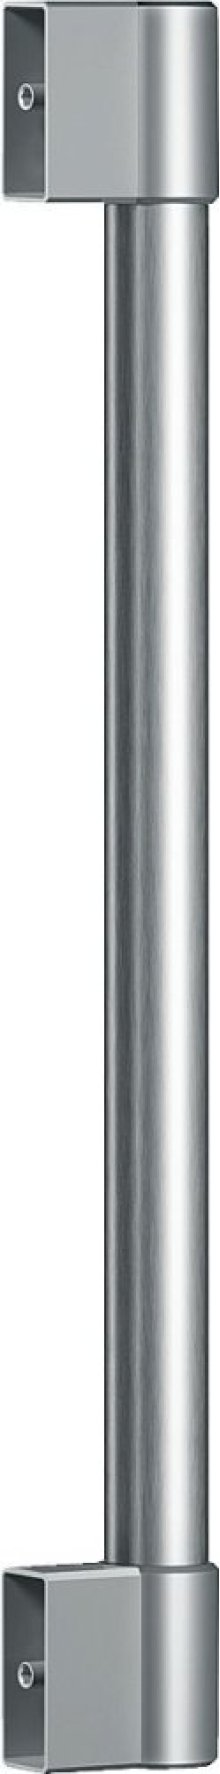 20-Inch Professional Handle for Under Counter